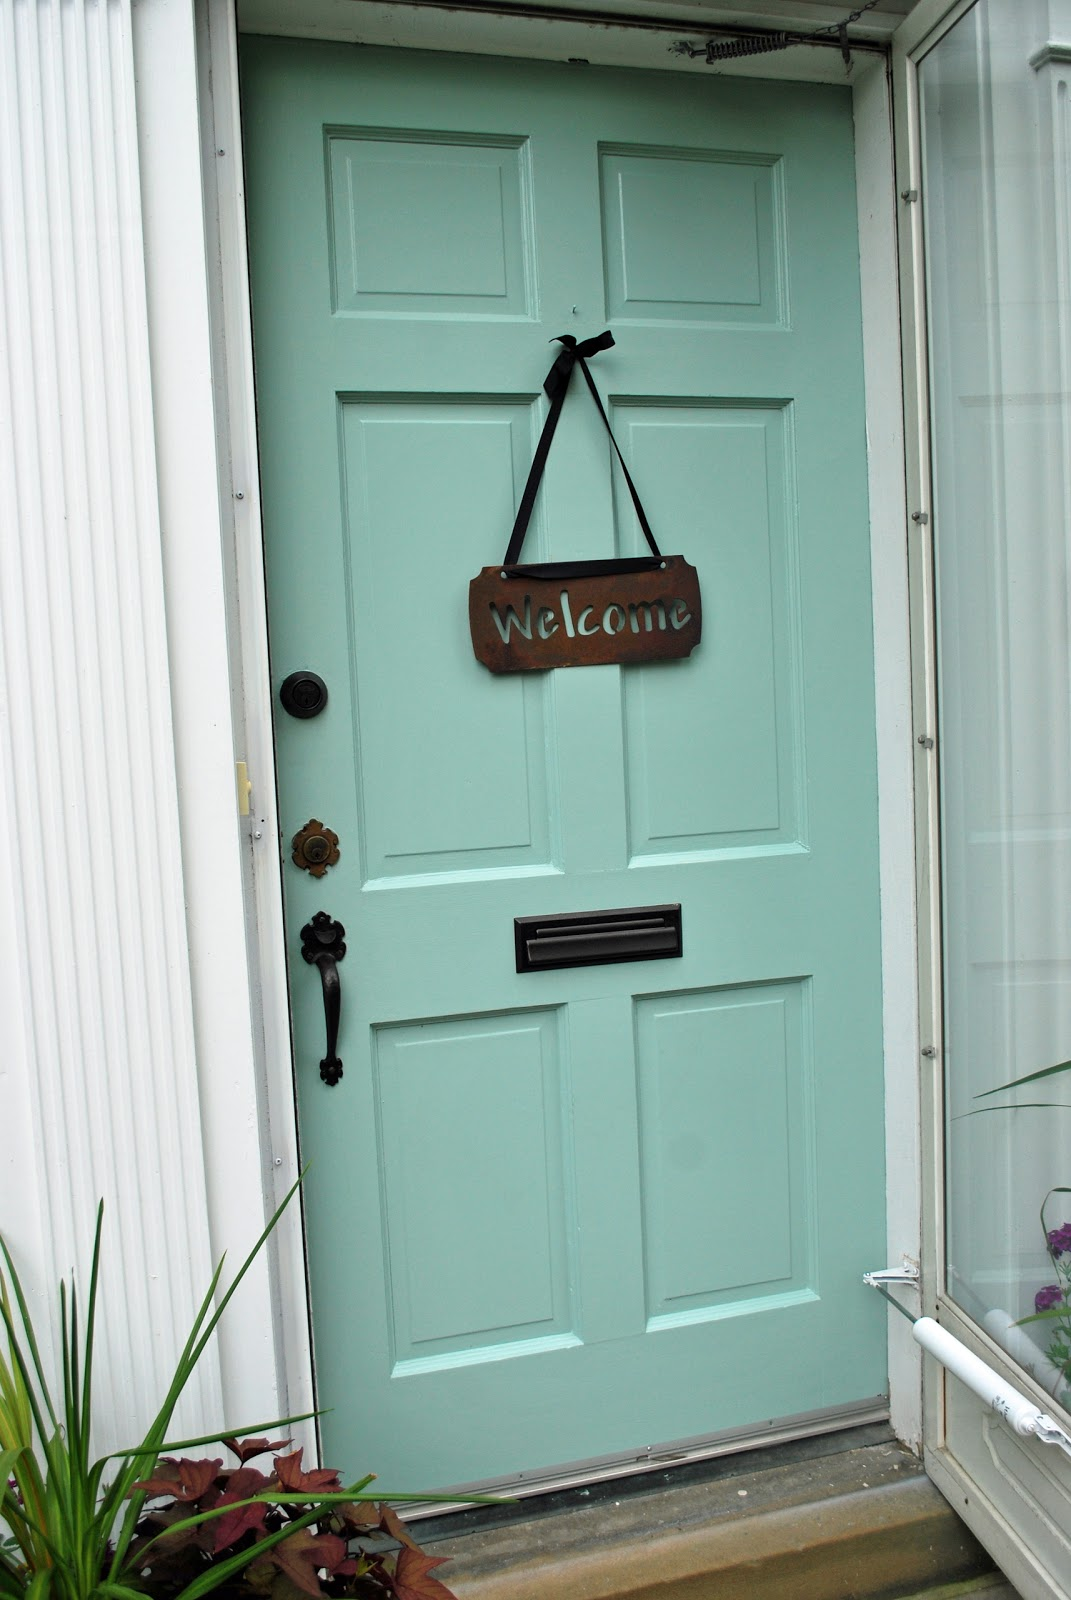 Fix 39 n up the house paint colors - Front door colors for blue house ...